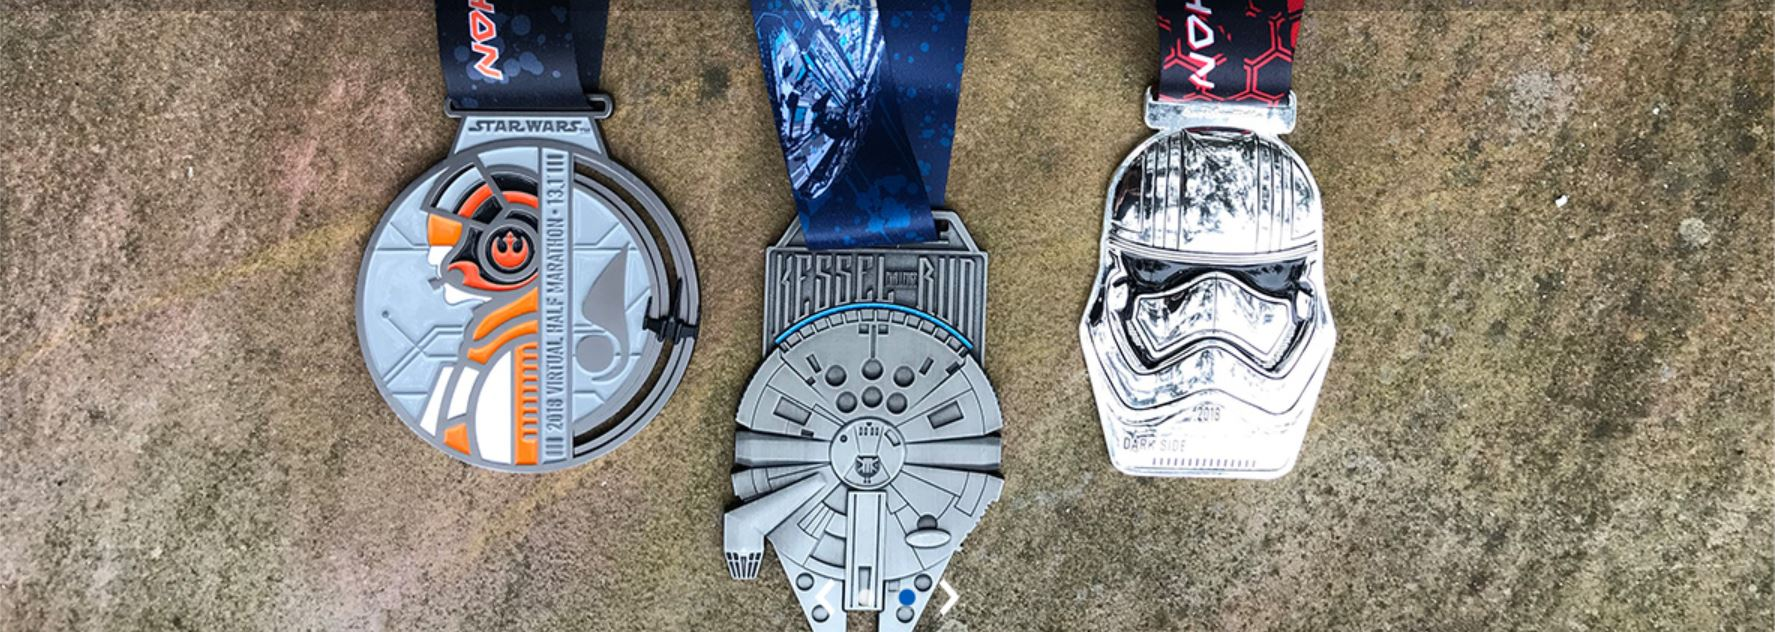 runDisney Star Wars Virtual Half Marathon